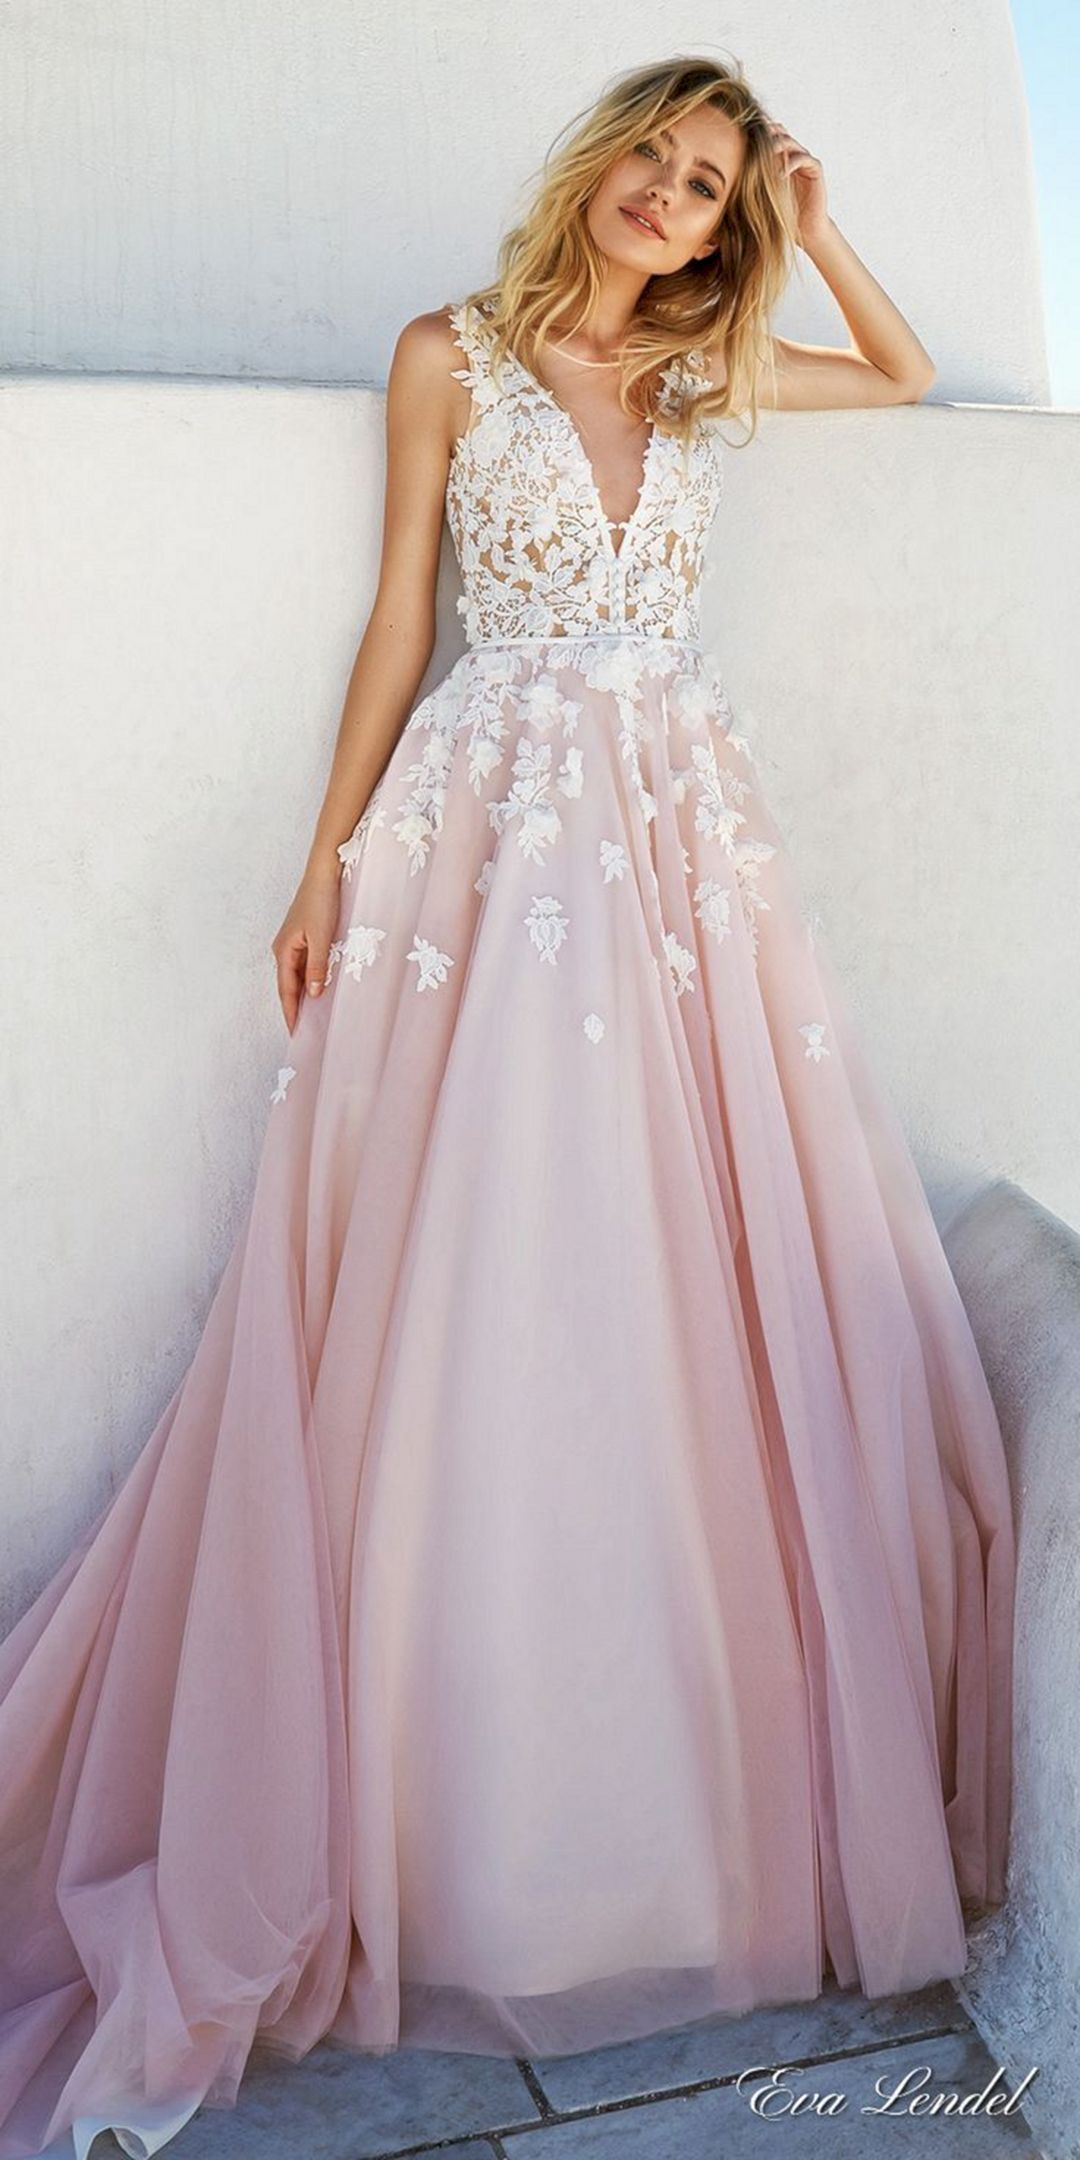 Best Lovely Pink Wedding Gown Color Ideas For Beautiful Bride 25